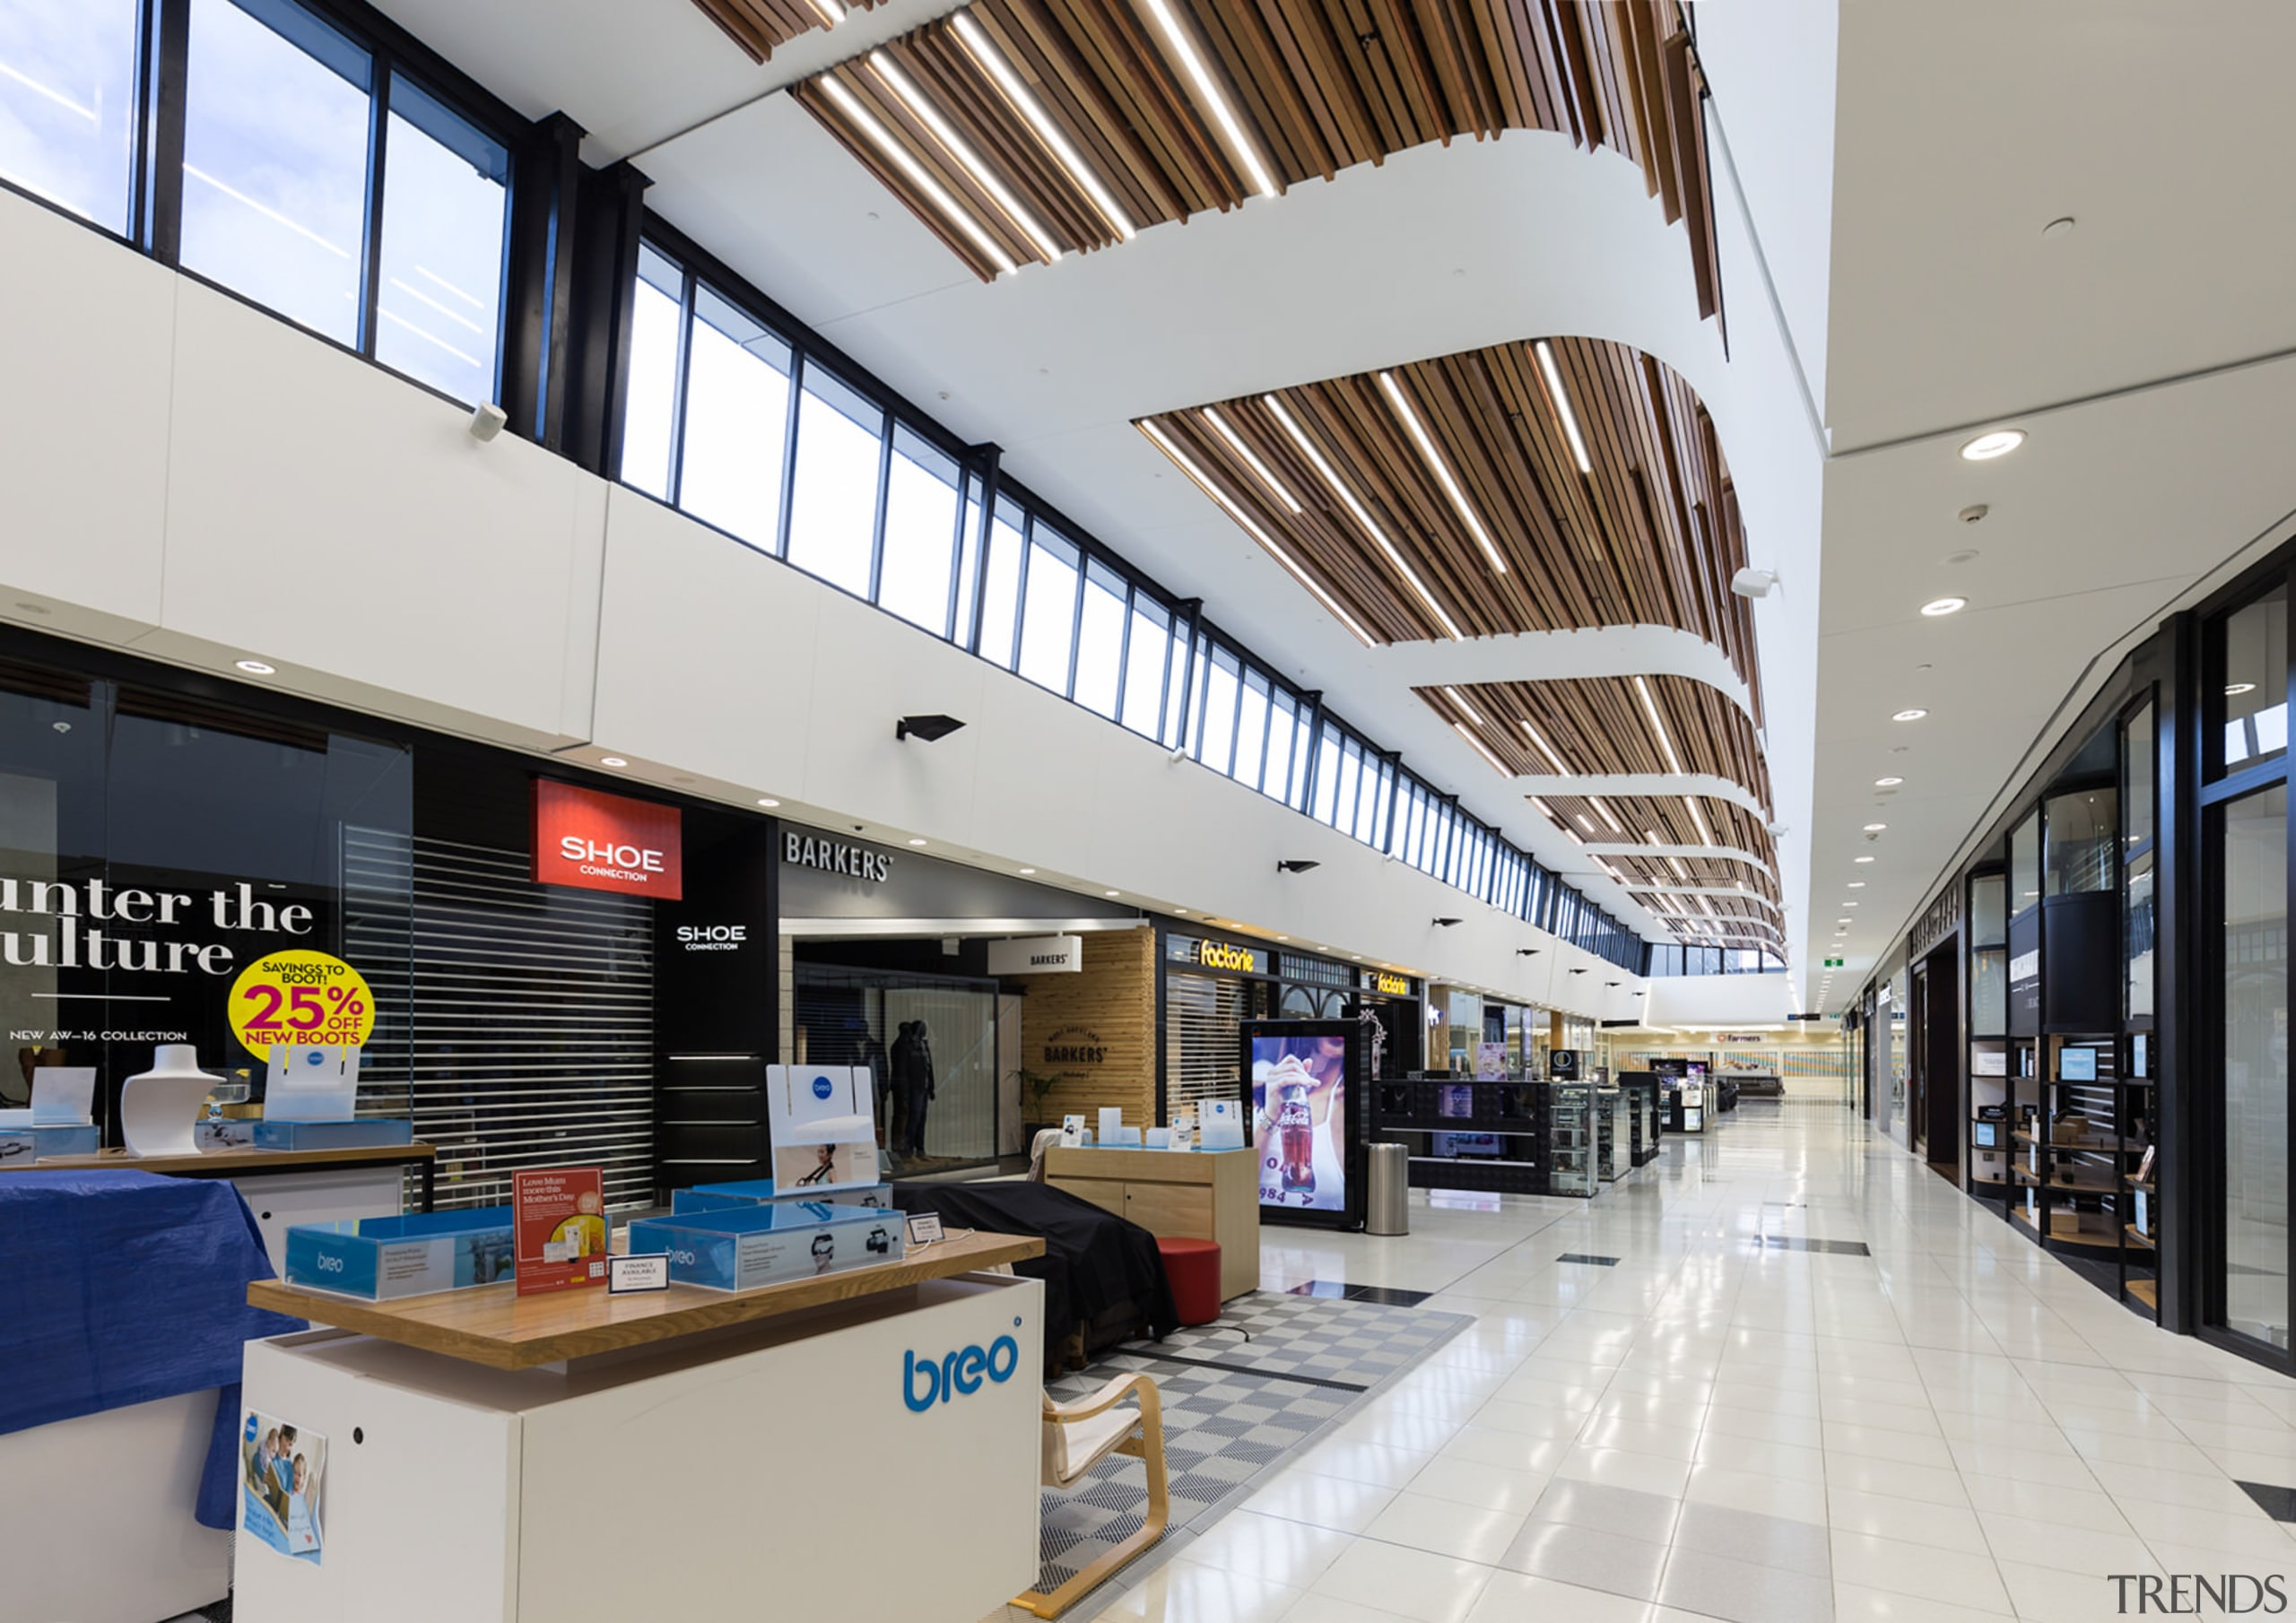 Clerestory windows run the length of the North daylighting, interior design, shopping mall, gray